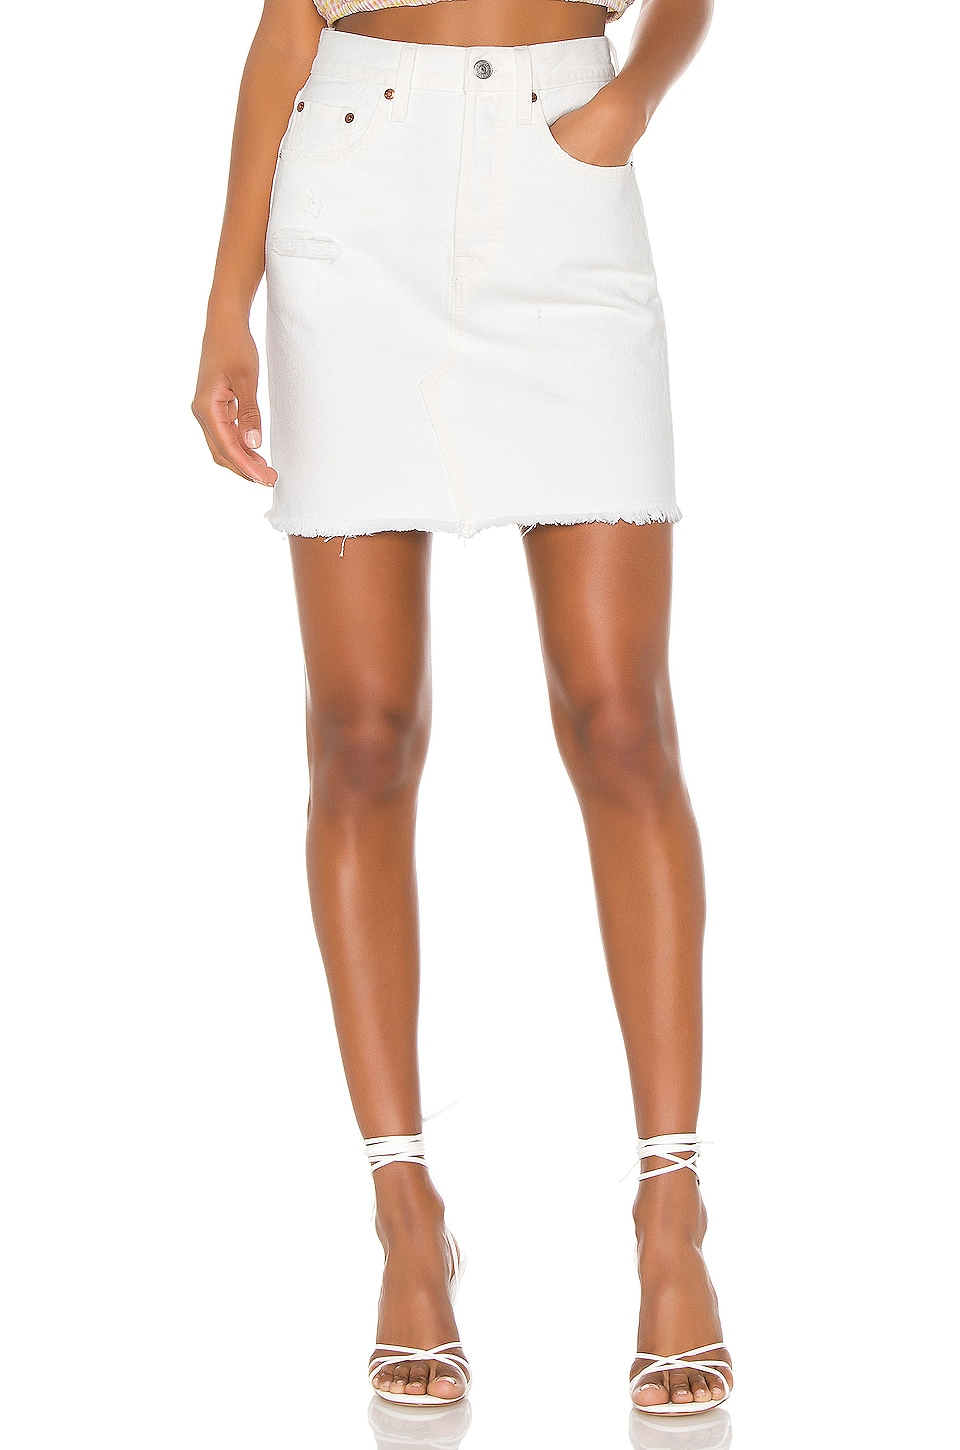 LEVI'S High Rise Deconstructed Skirt in Pearly White